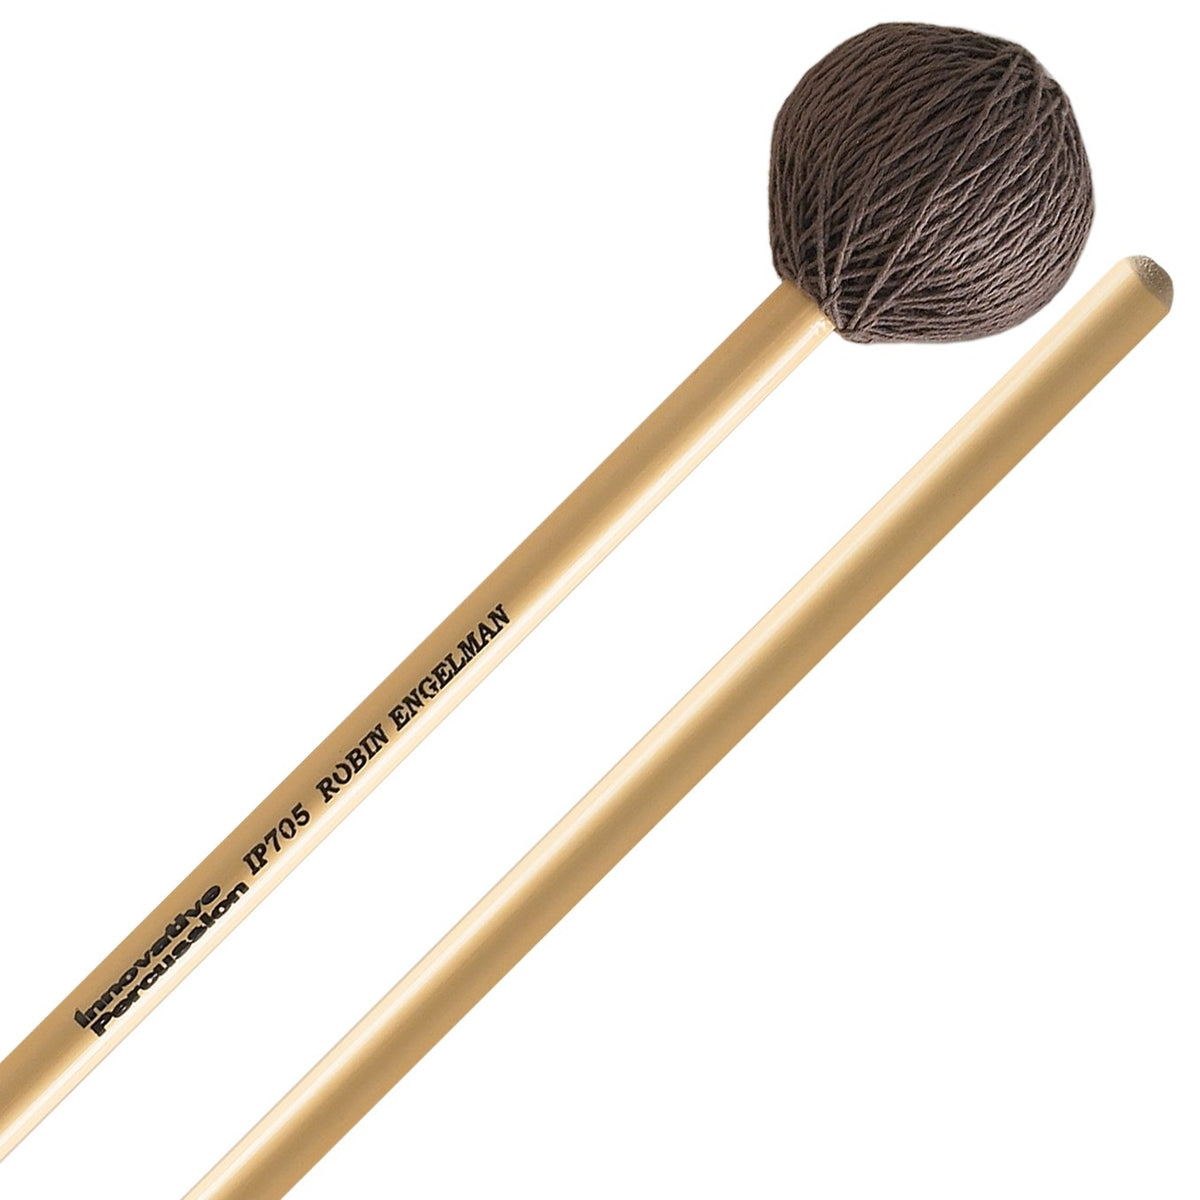 Innovative Percussion - Robin Engelman Series Concert Mallets-Percussion-Innovative Percussion-IP705: Soft/Tenor Voice-Music Elements